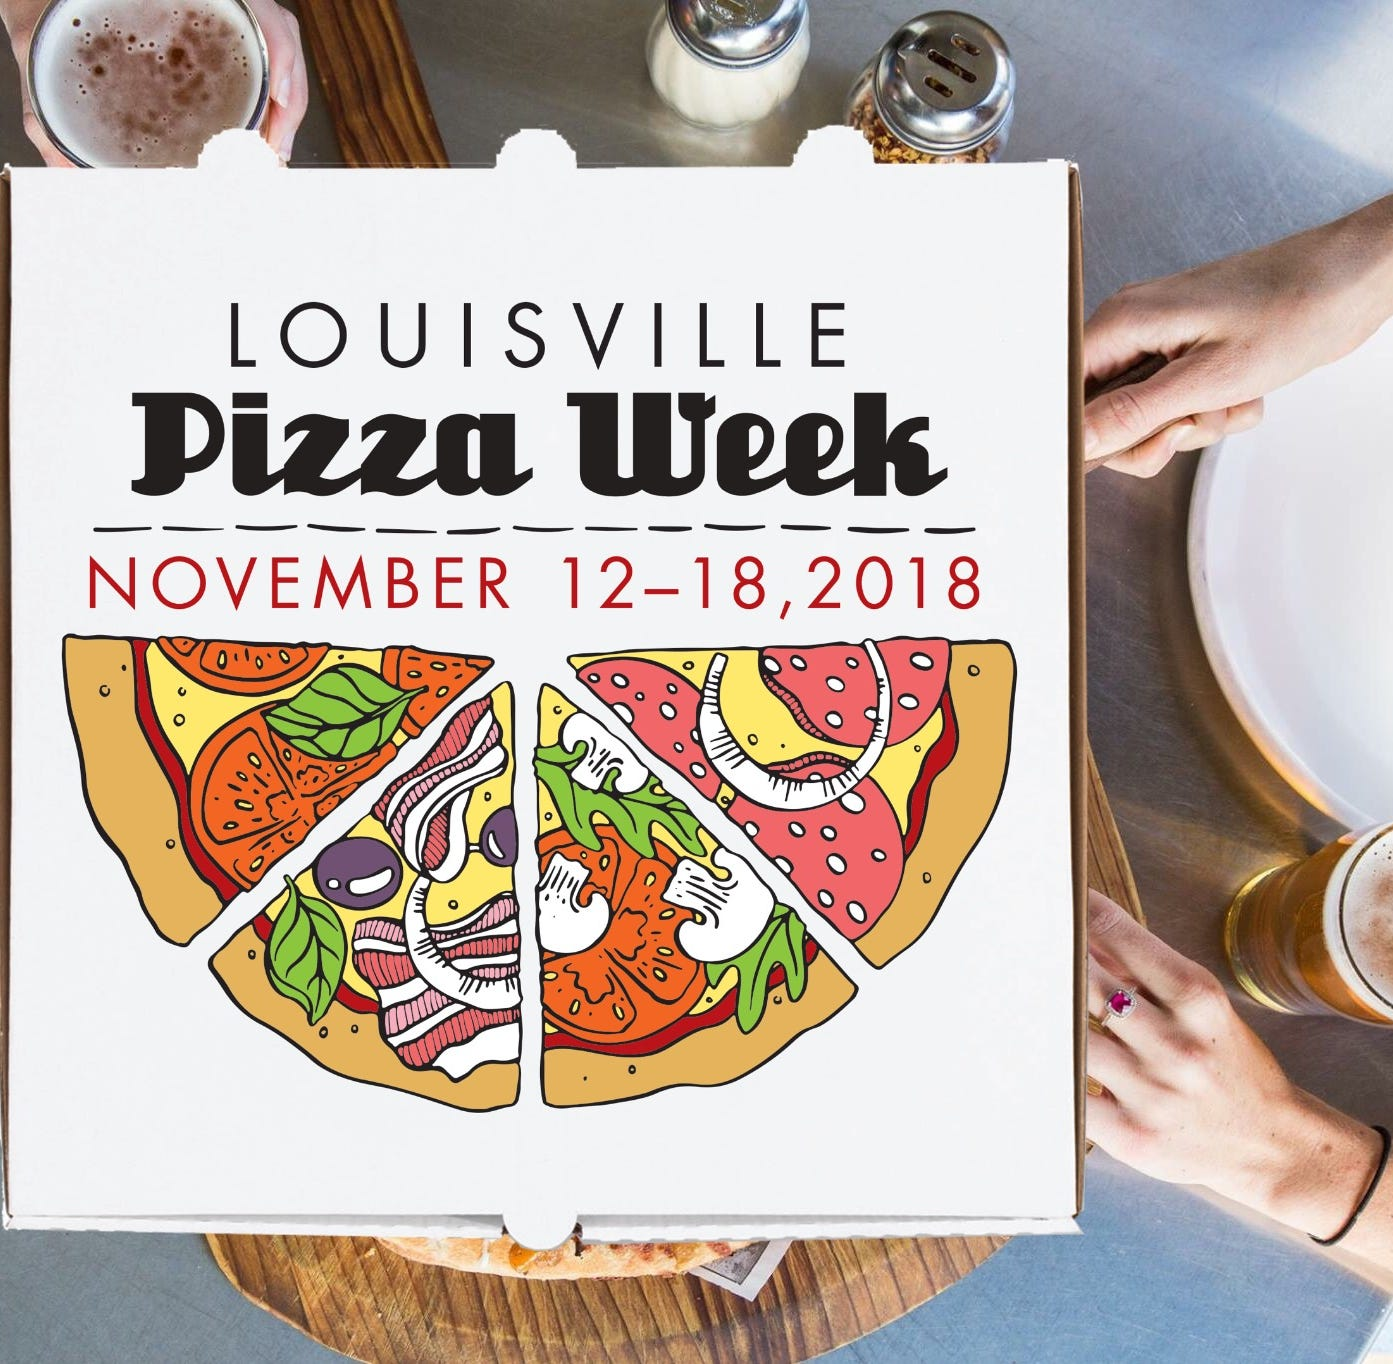 Your complete guide to getting an $8 pie during Louisville Pizza Week